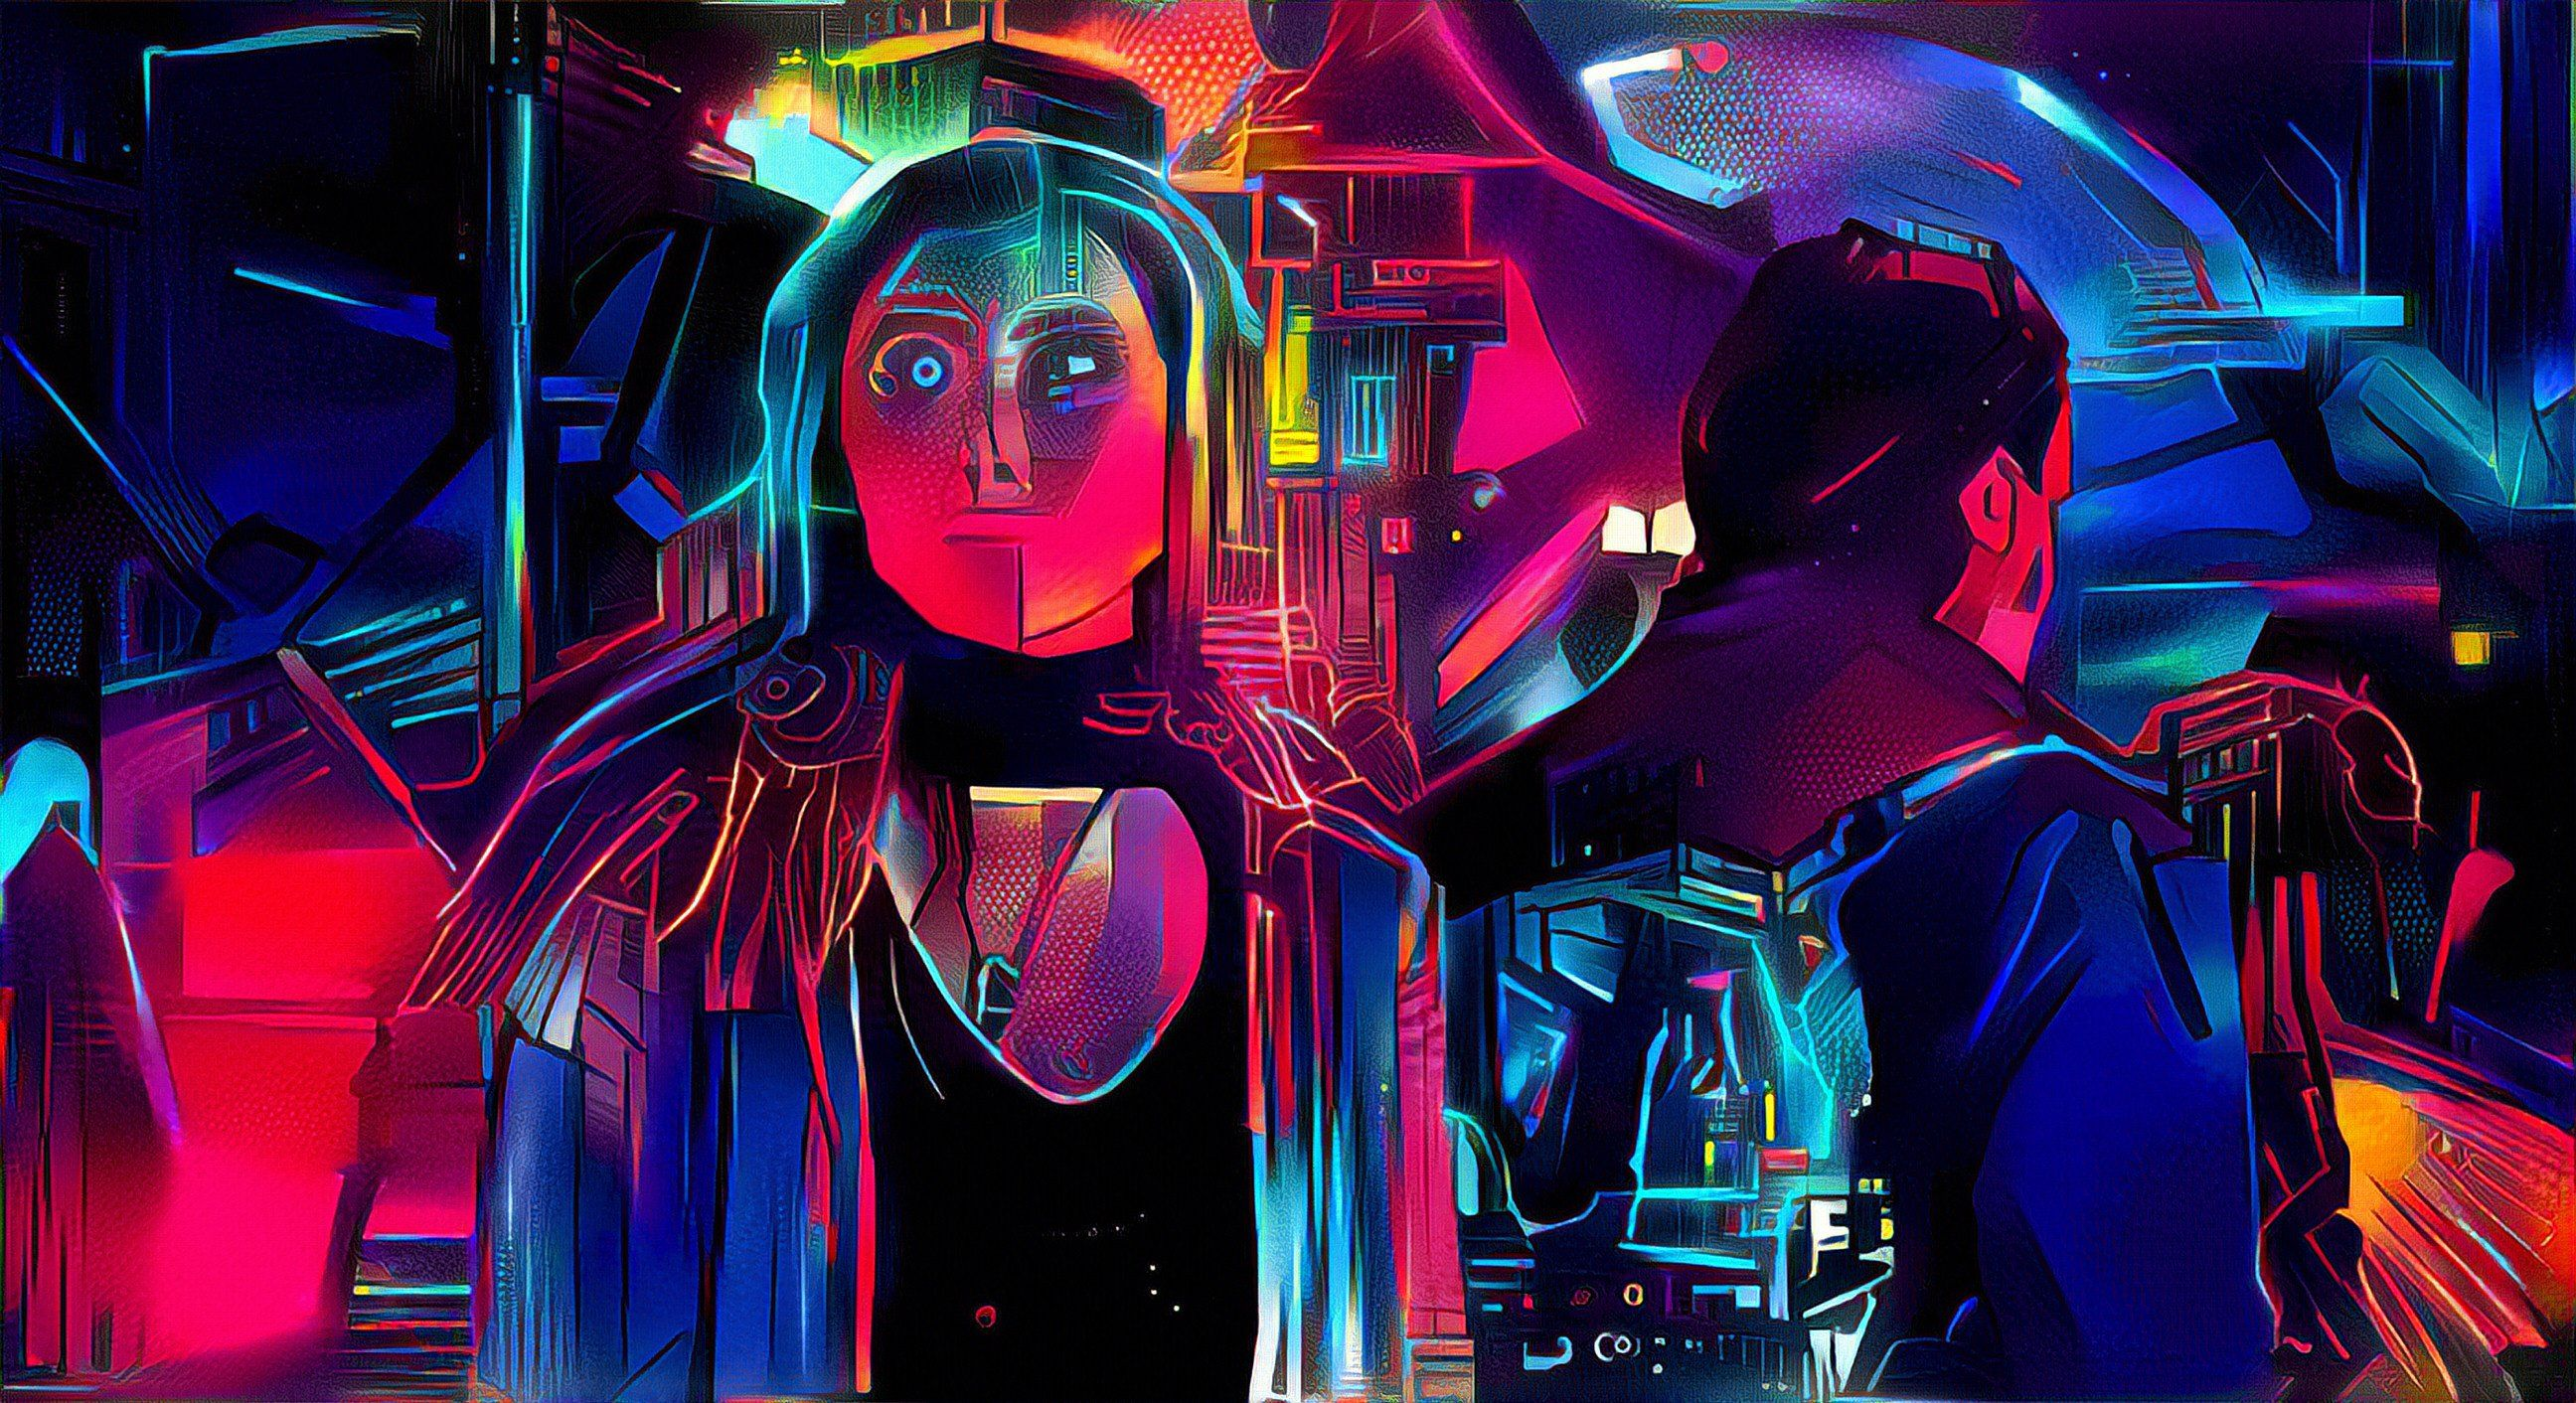 Altered Carbon Reileen Kawahara Dichen Lachman With Images